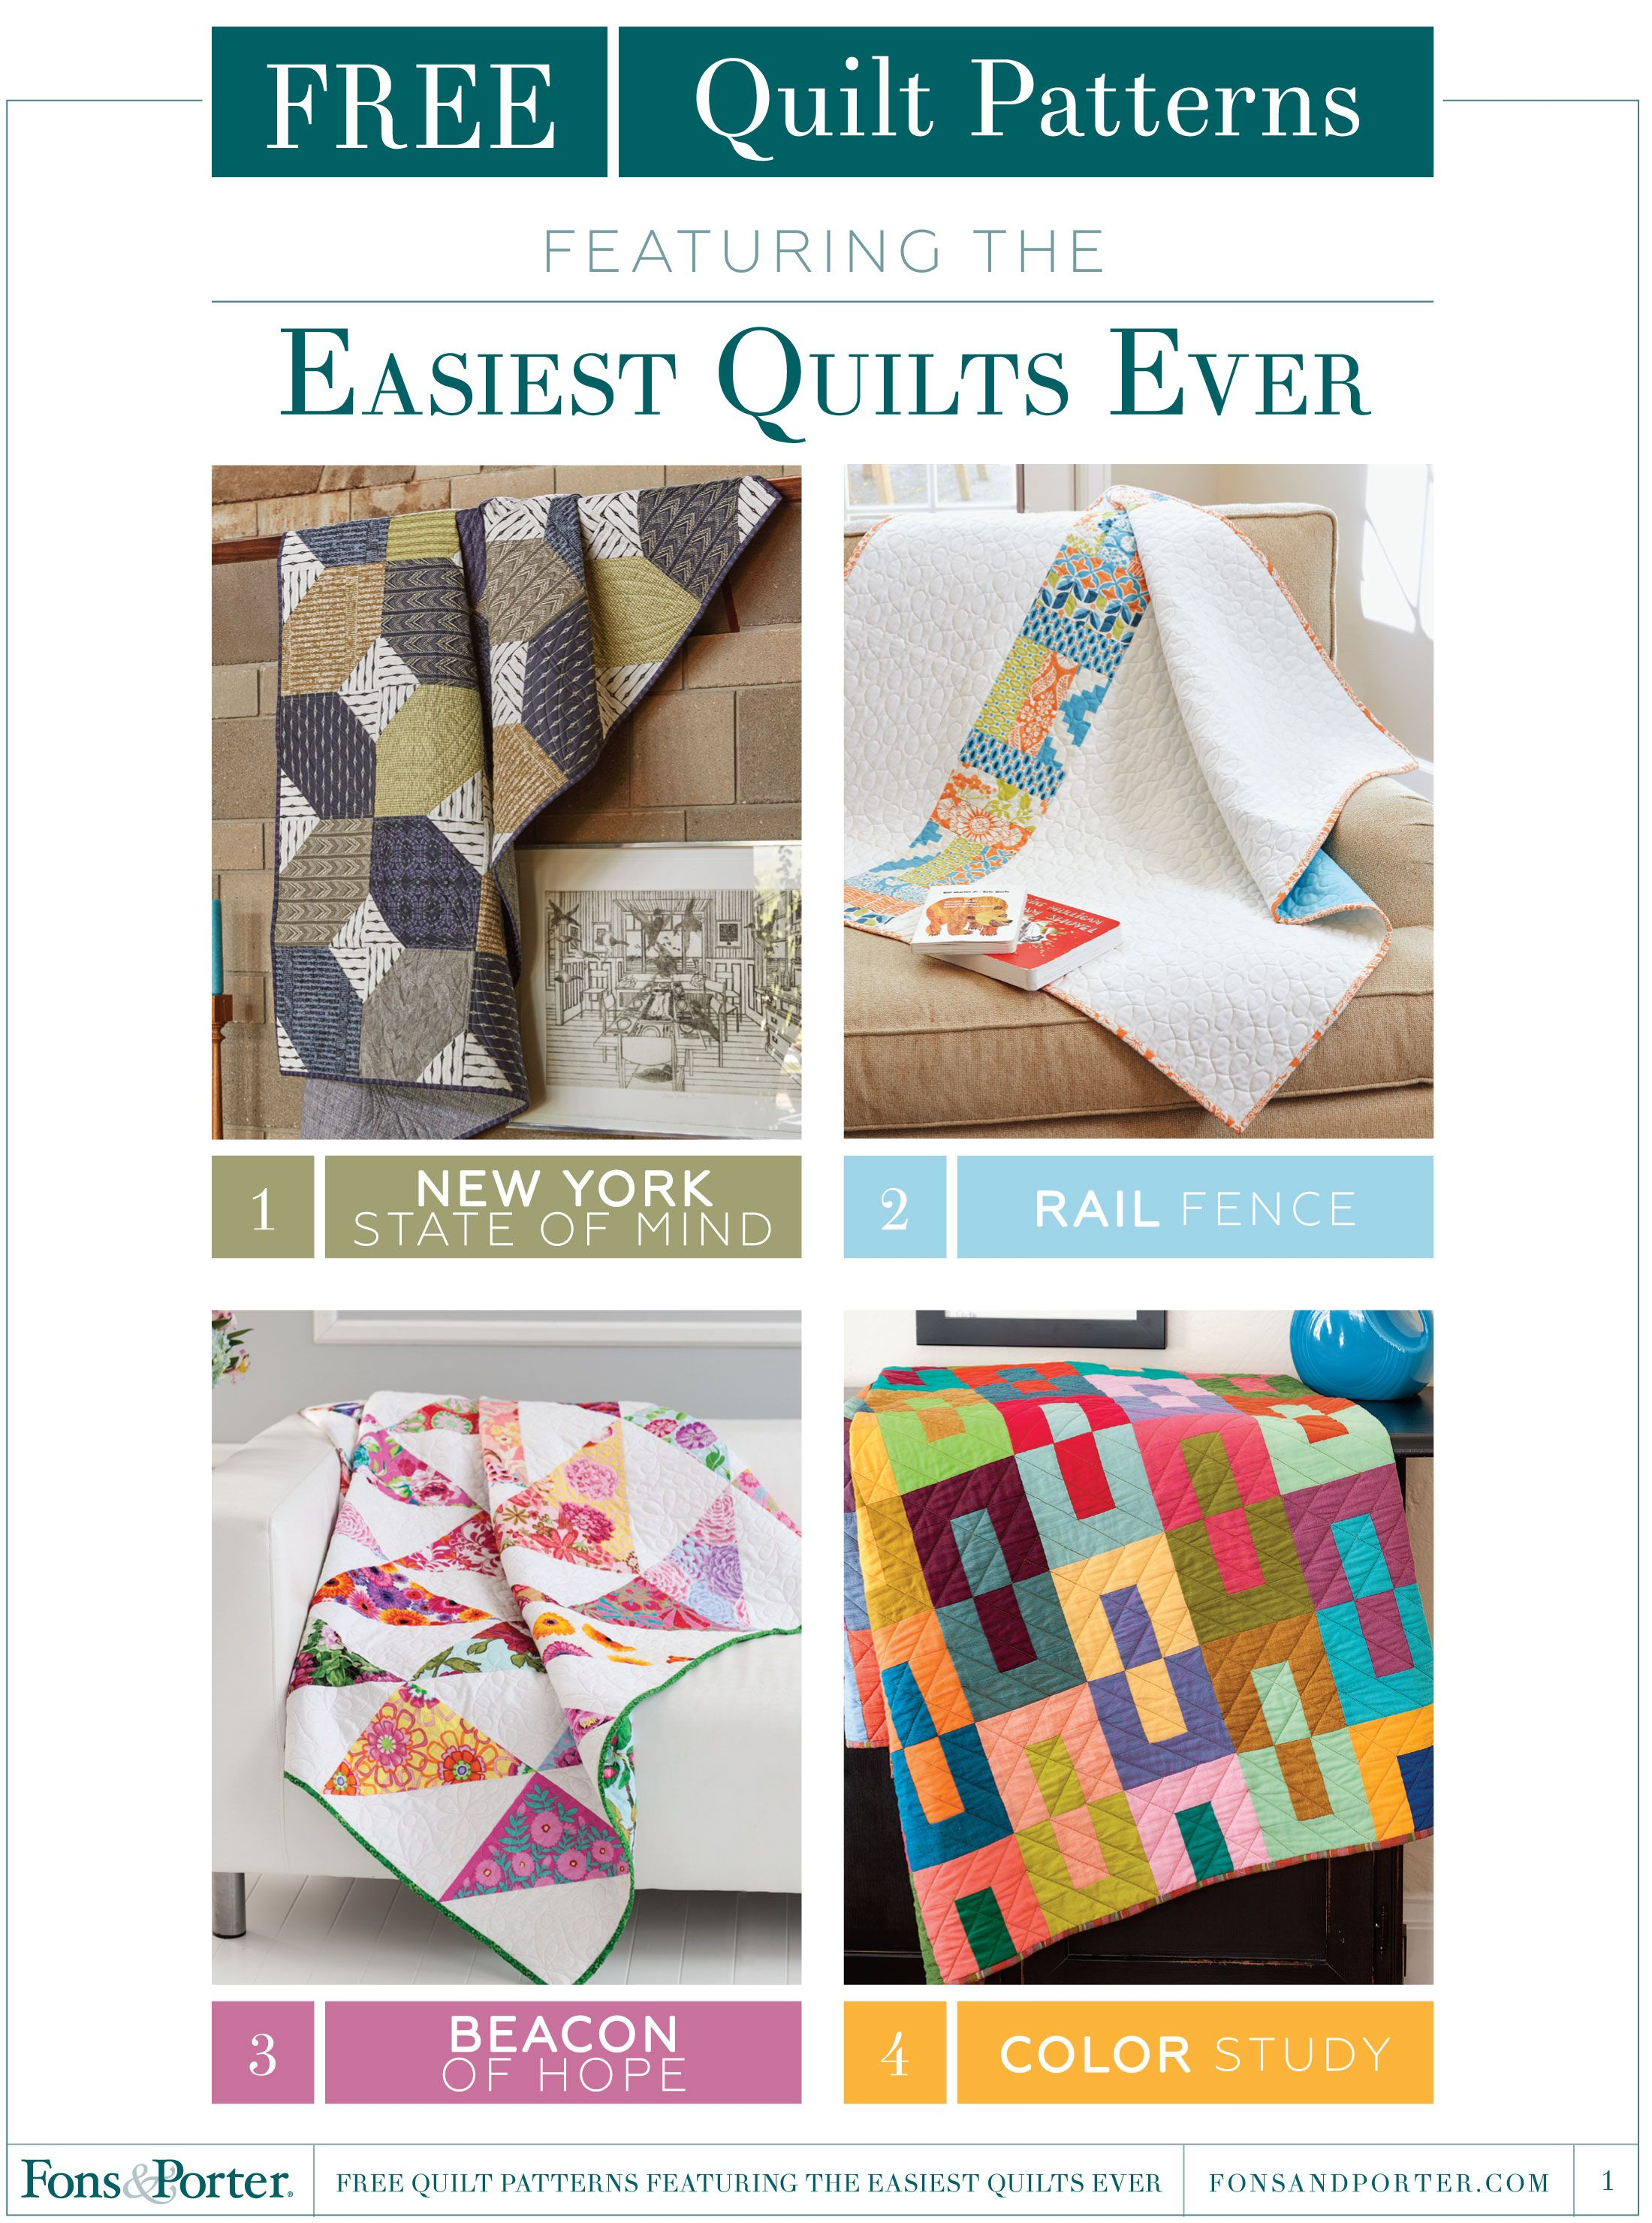 About Fons & Porter, a Division of The Quilting Company | Easy